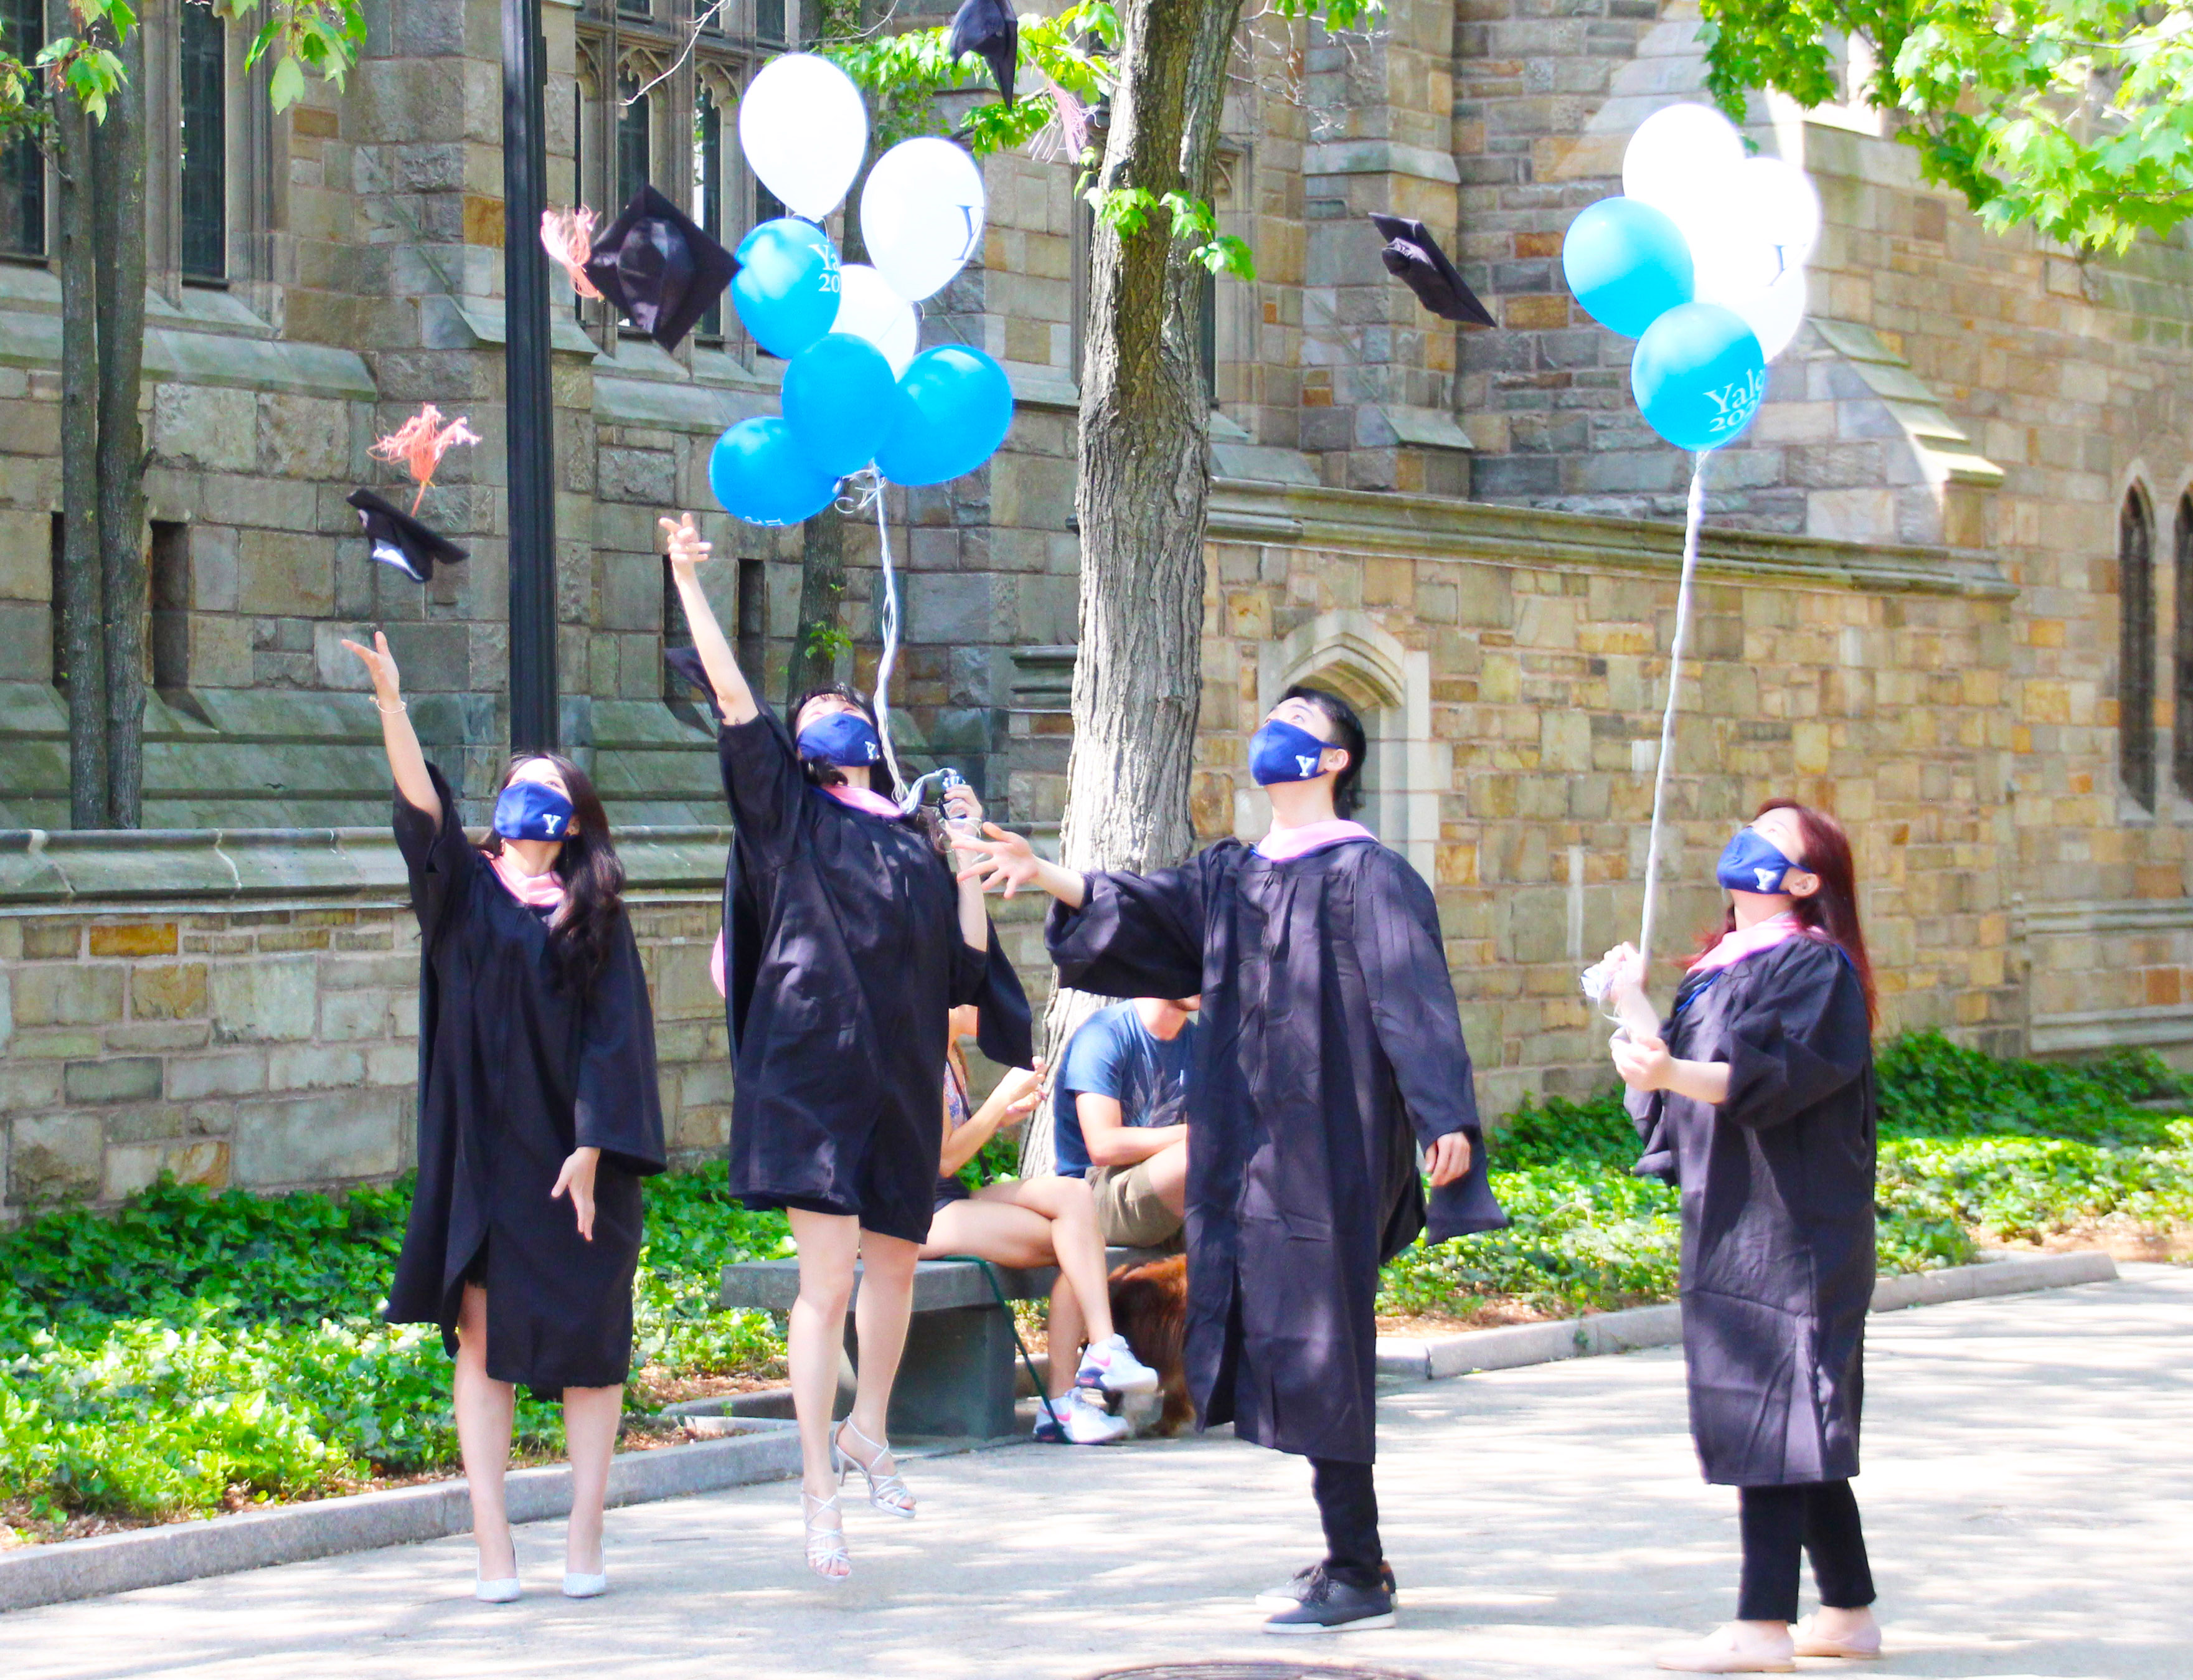 students  with balloons throwing mortar boards in air in front of library building